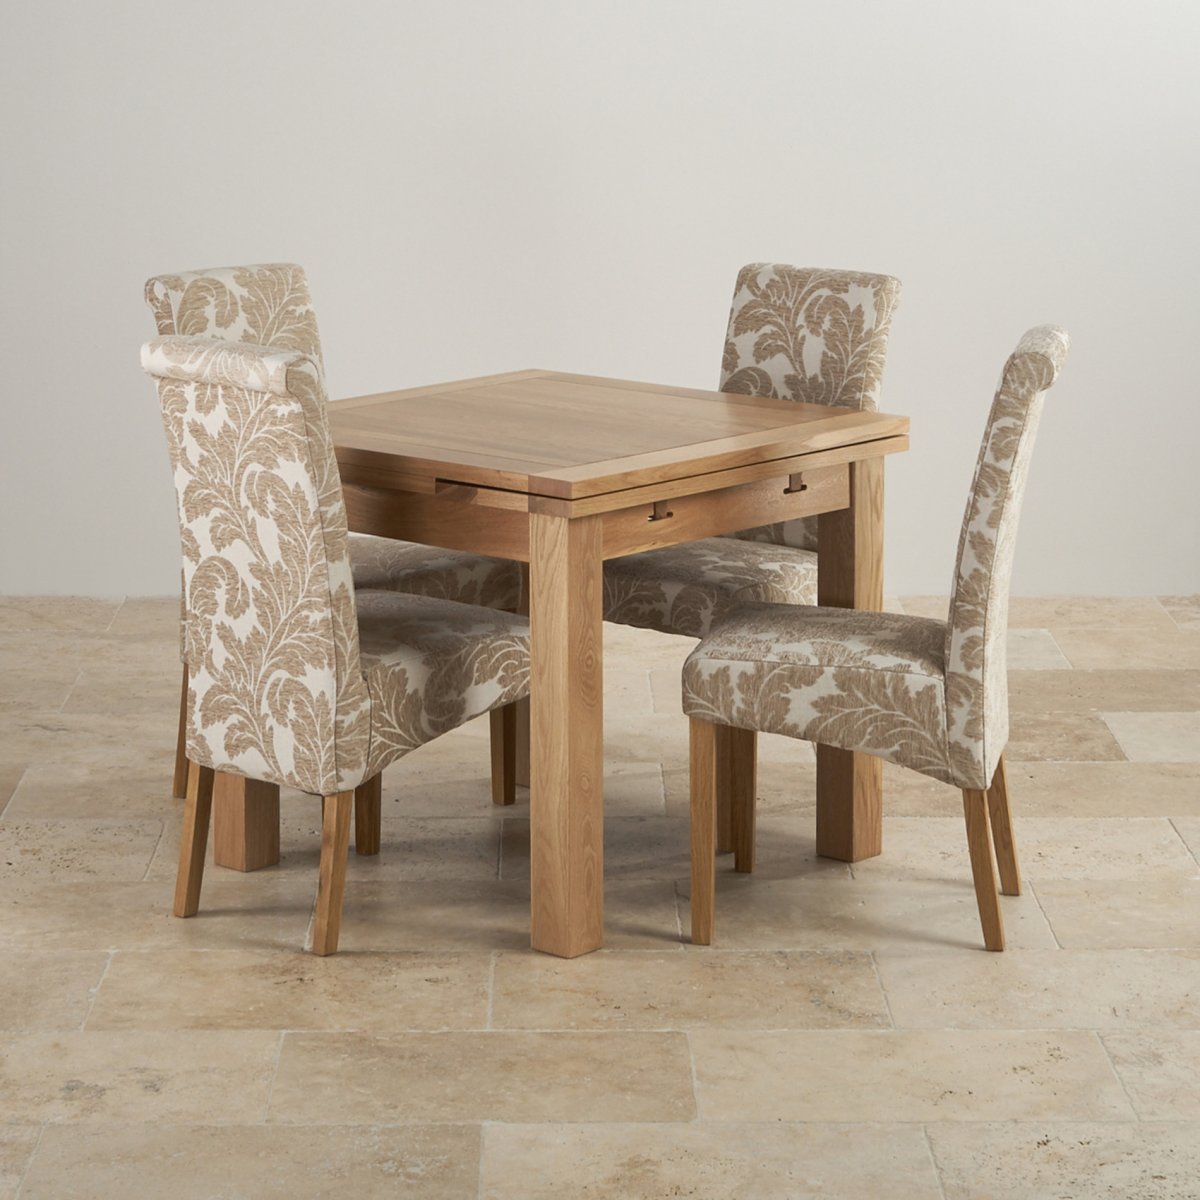 Dorset oak dining set 3ft table with 4 beige chairs - Extended dining table sets ...